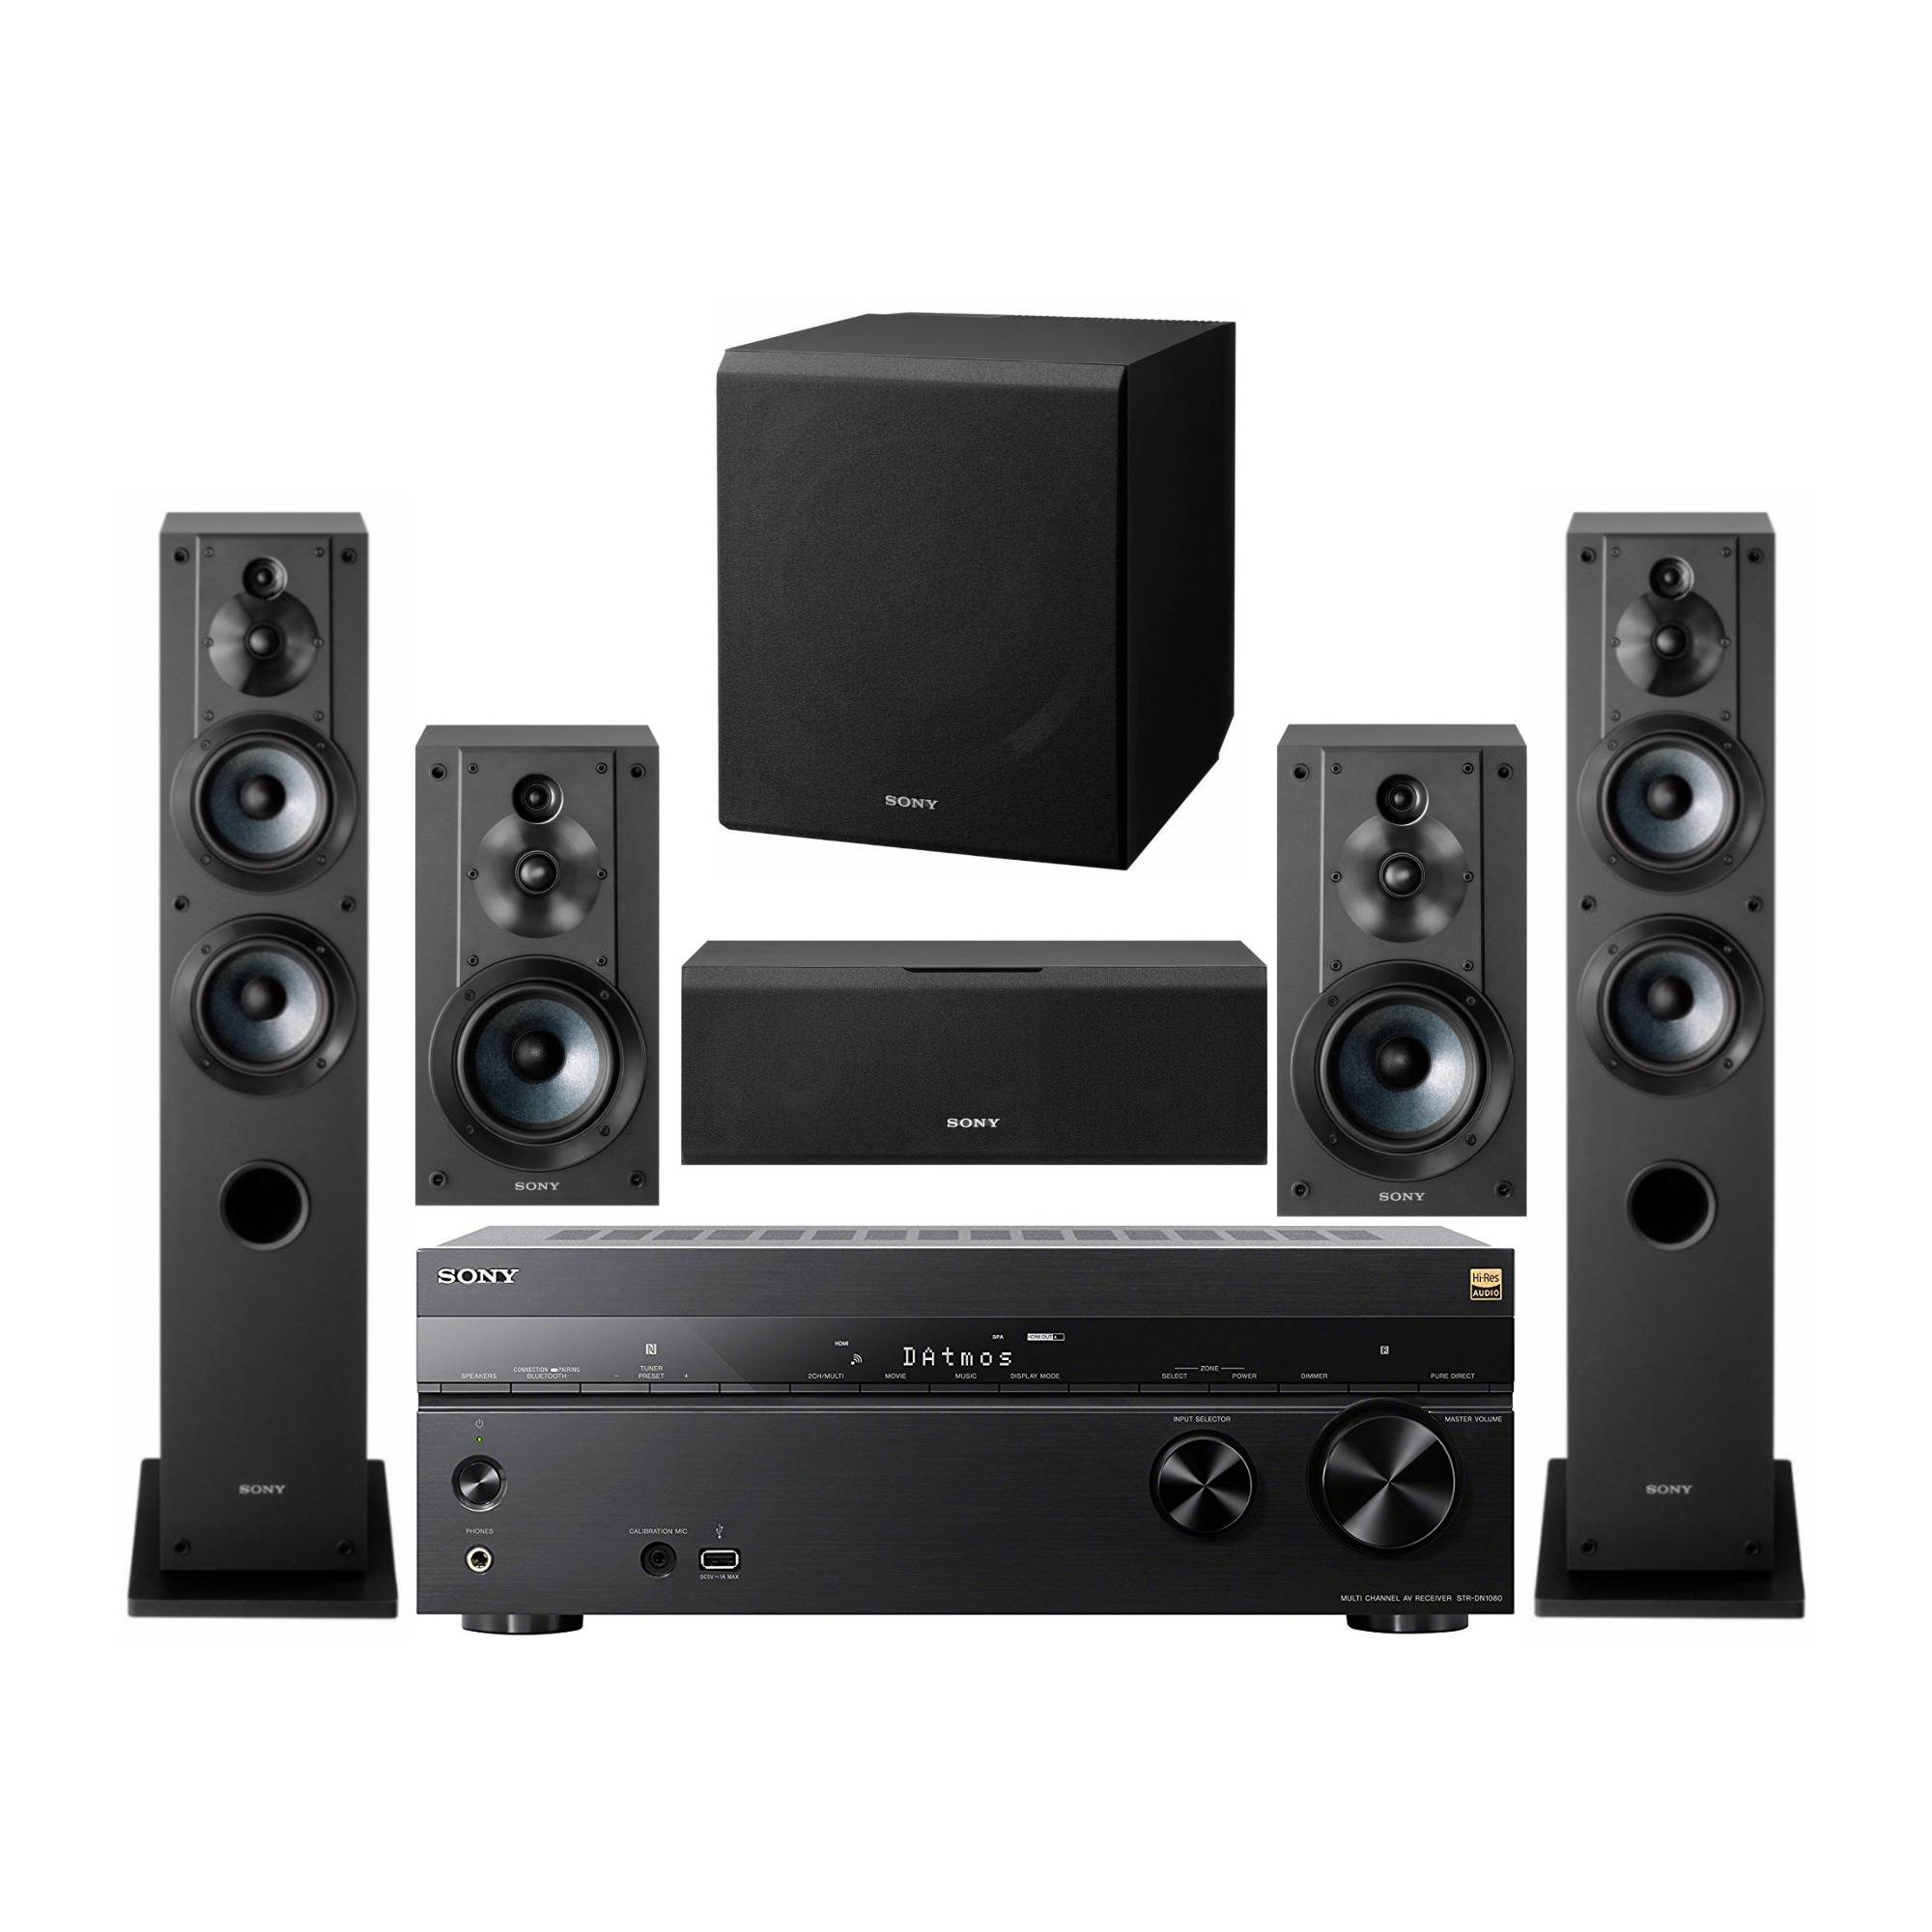 Sony 7.2 Channel 3D 4K A/V Surround Sound Multimedia Home Theater System (STRDN1080, SSCS3 (2), SSCS5, SSCS8, SACS9)